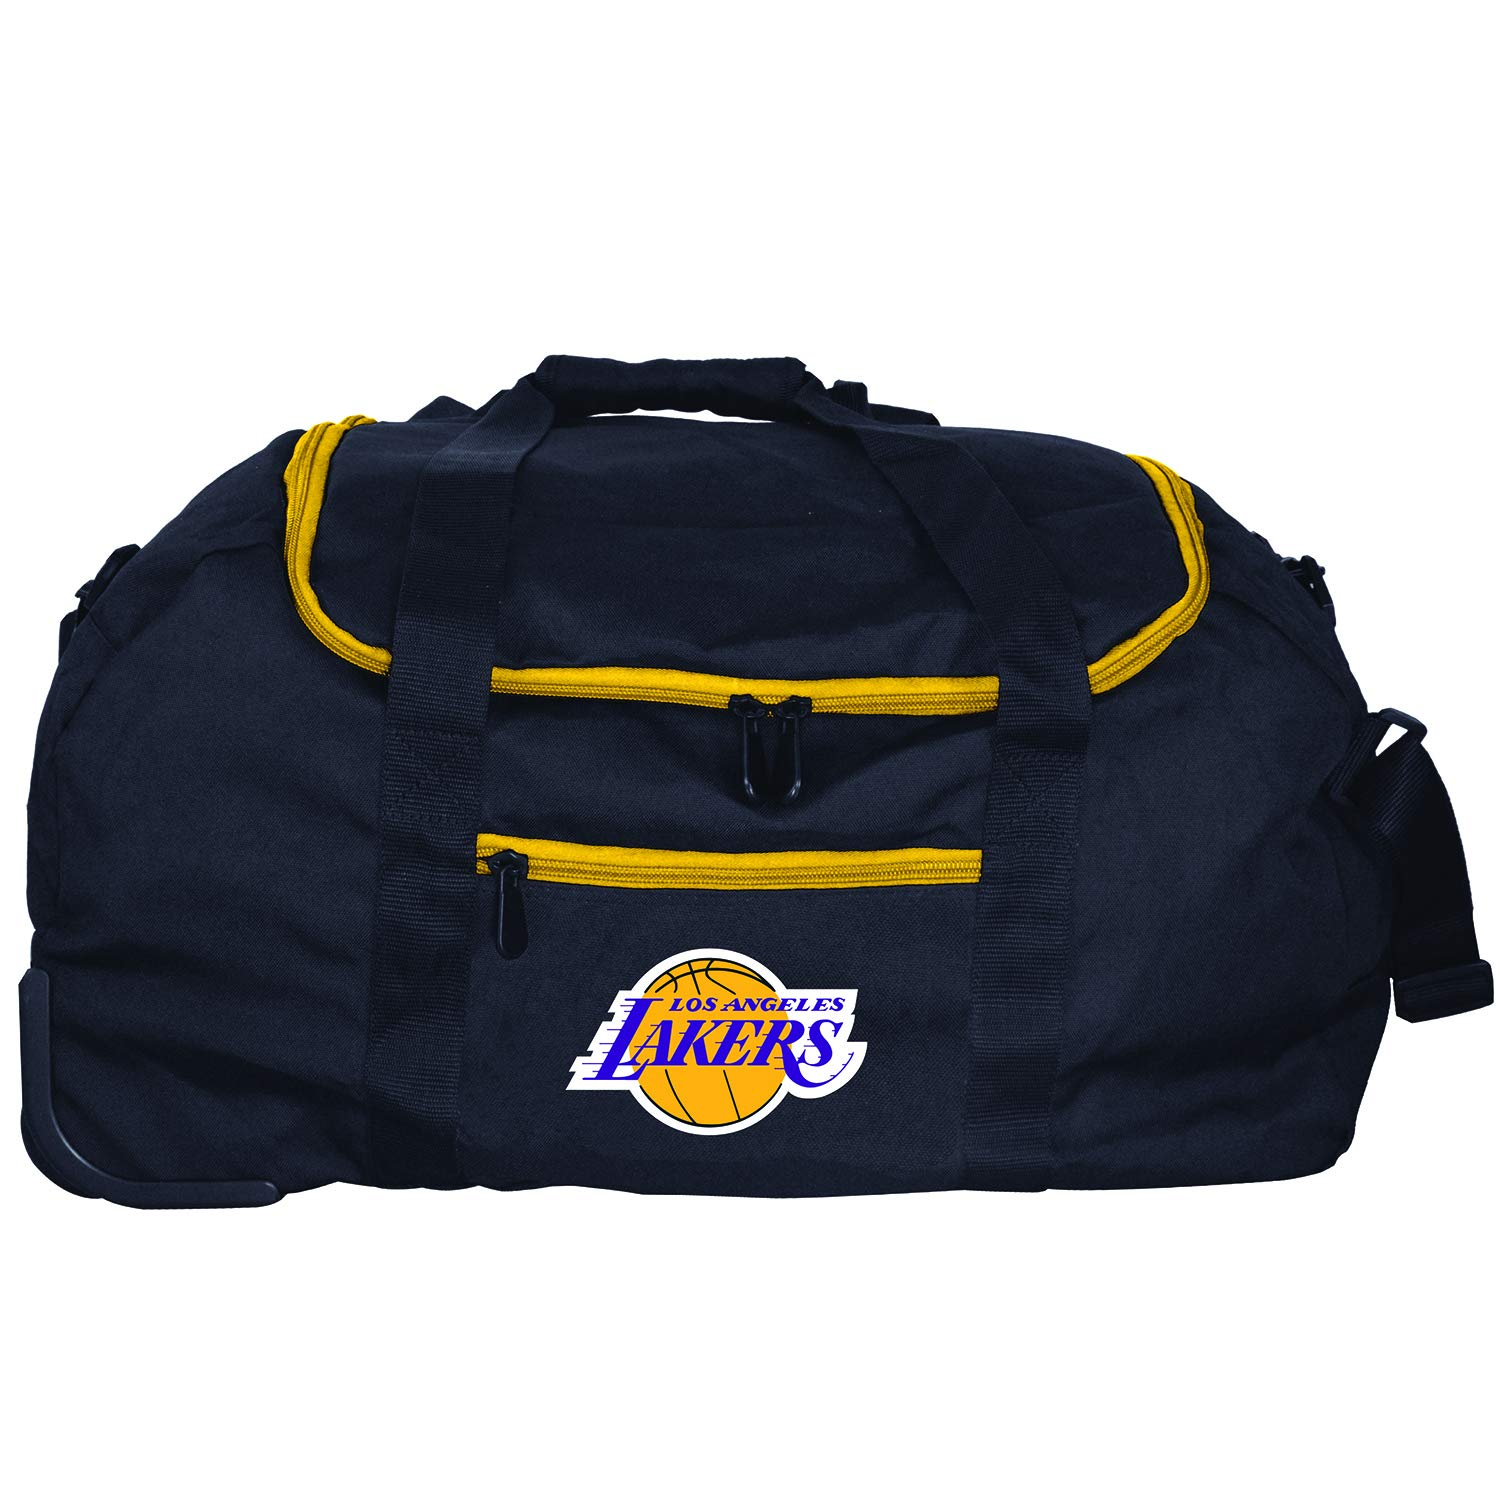 NBA Los Angeles Lakers Mini Collapsible Duffel, 22-inches, Black